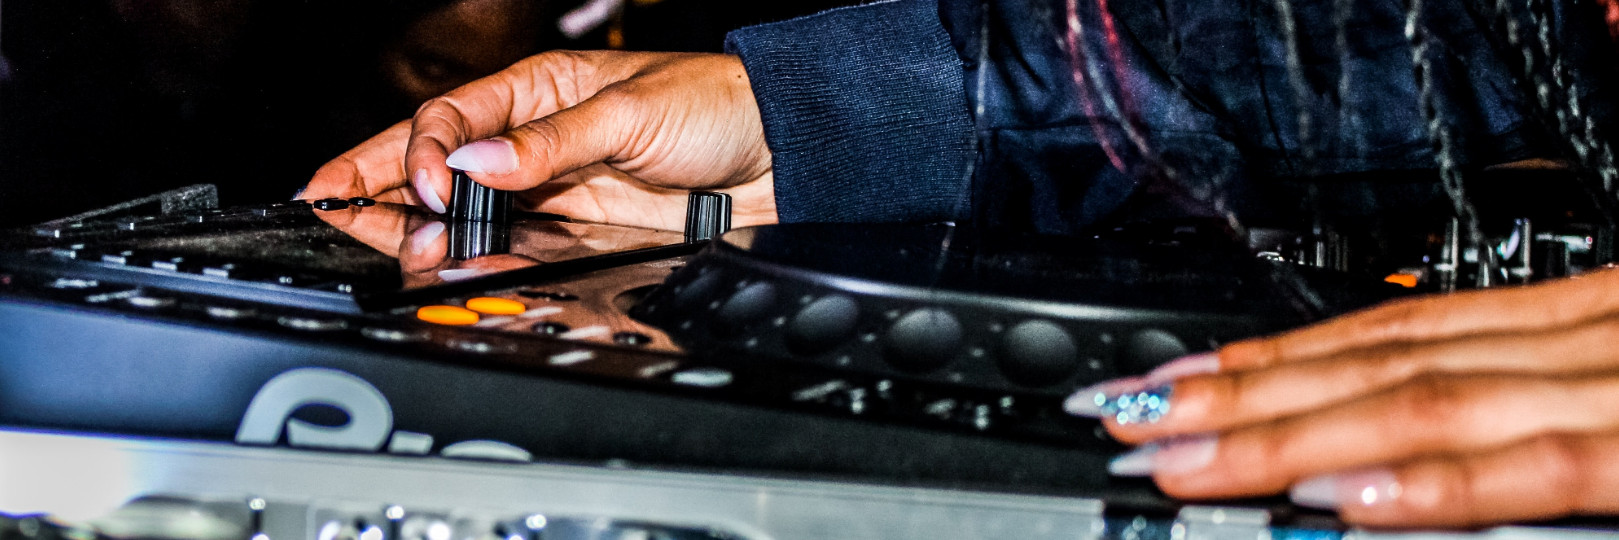 Credit and concern: reflections on non-male DJs